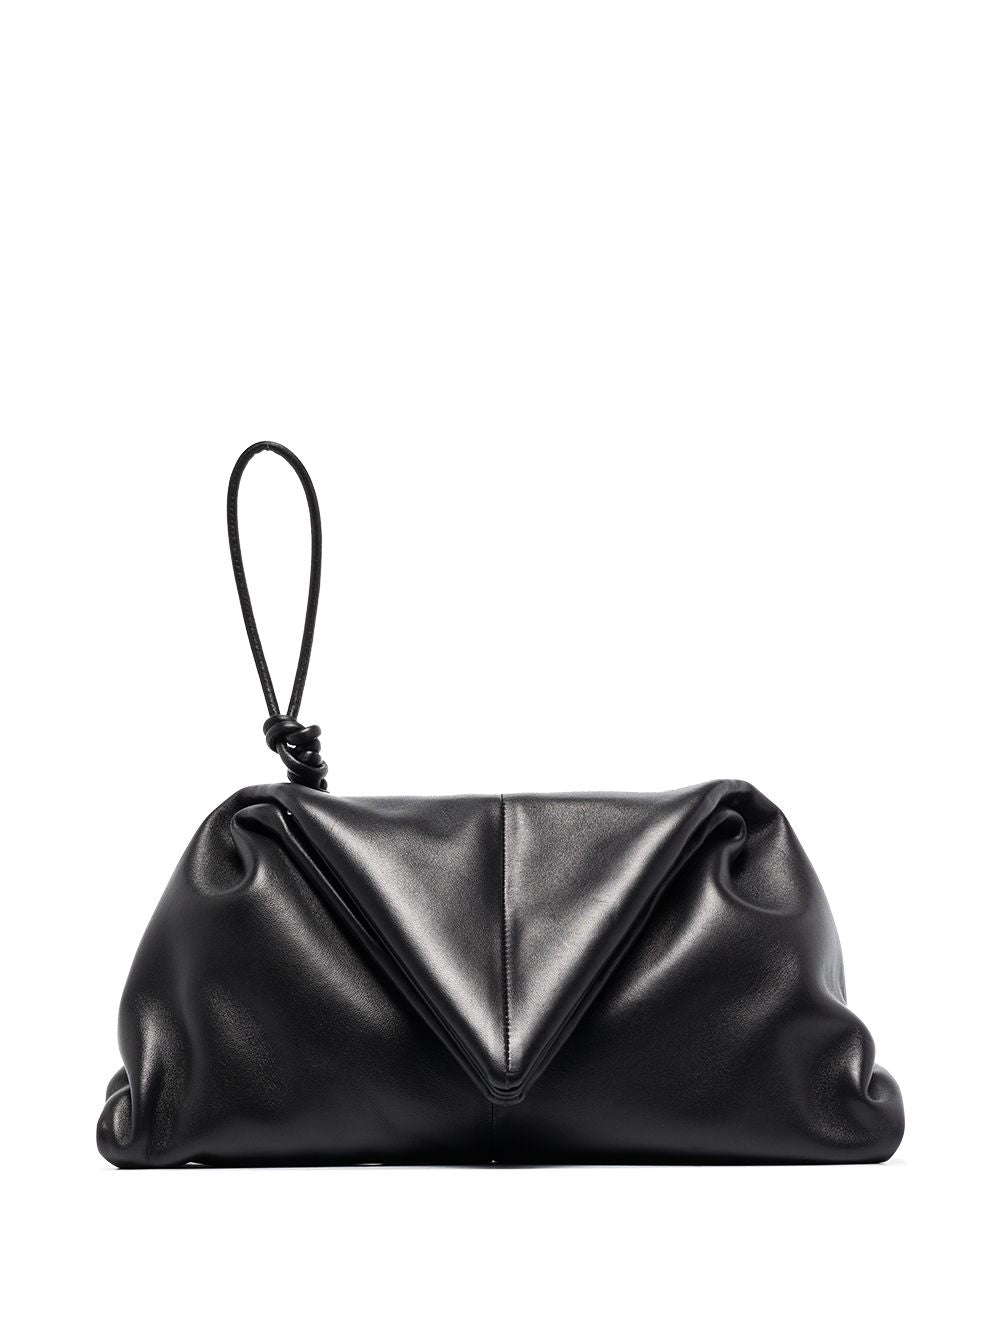 Bottega Veneta BV Trine Leather Clutch Bag - Spring '20 Runway Collection